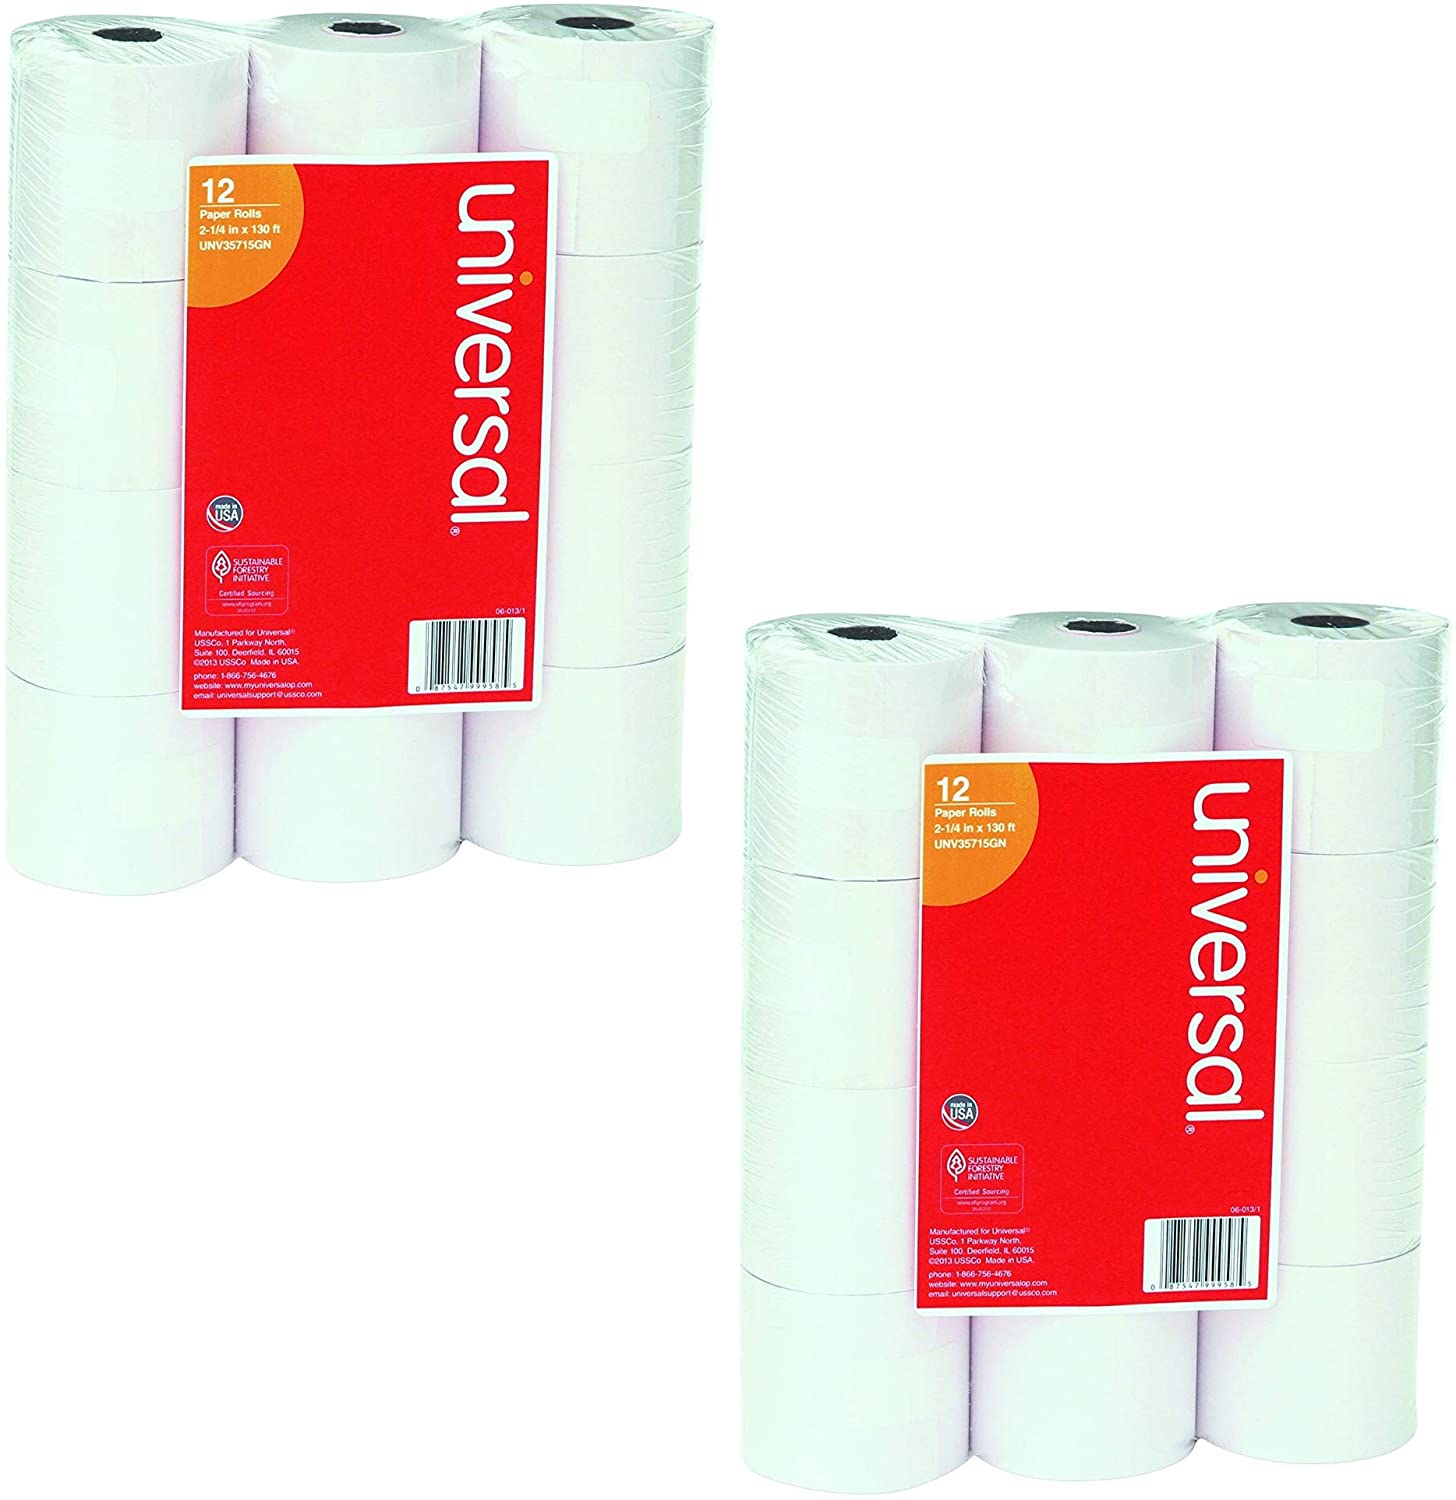 Universal : Single-Ply Adding Machine/Calculator Rolls, 16lb, 2-1/4 x 150 ft, White, 12/PK -:- Sold as 2 Packs of - 12 - / - Total of 24 Each